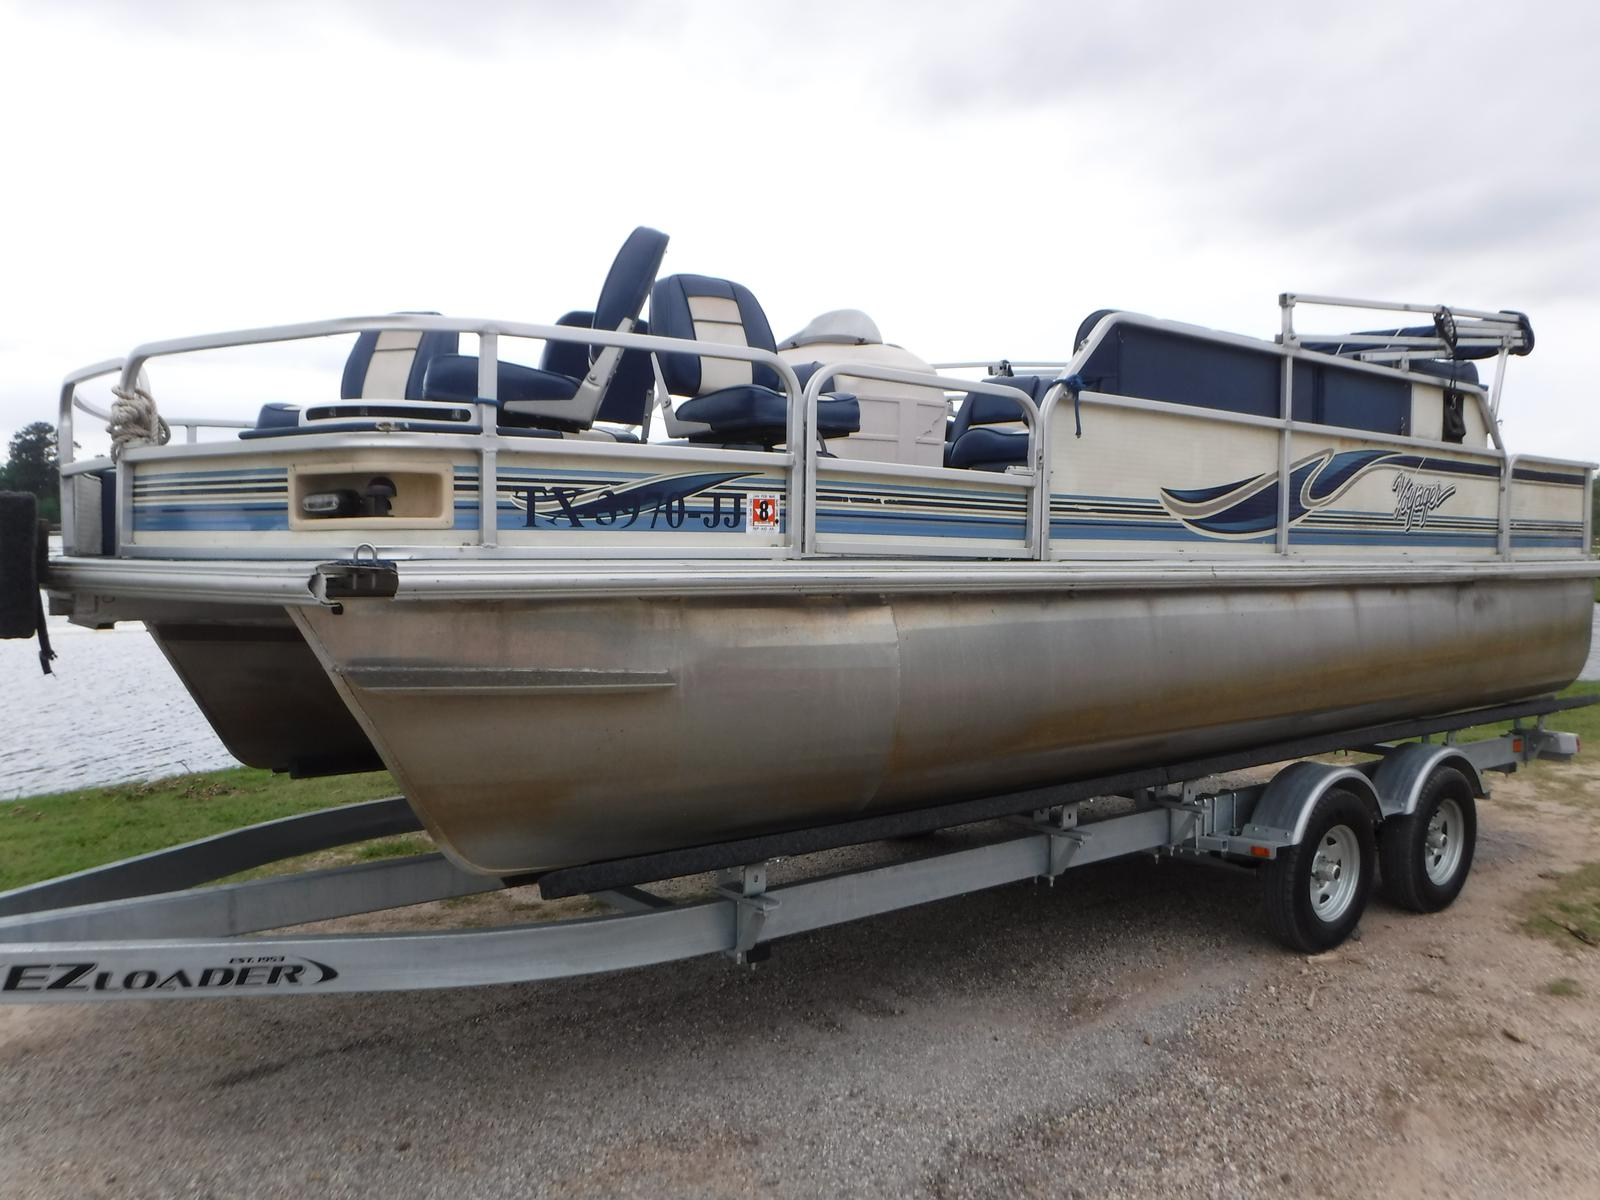 Voyager boats for sale - boats.com